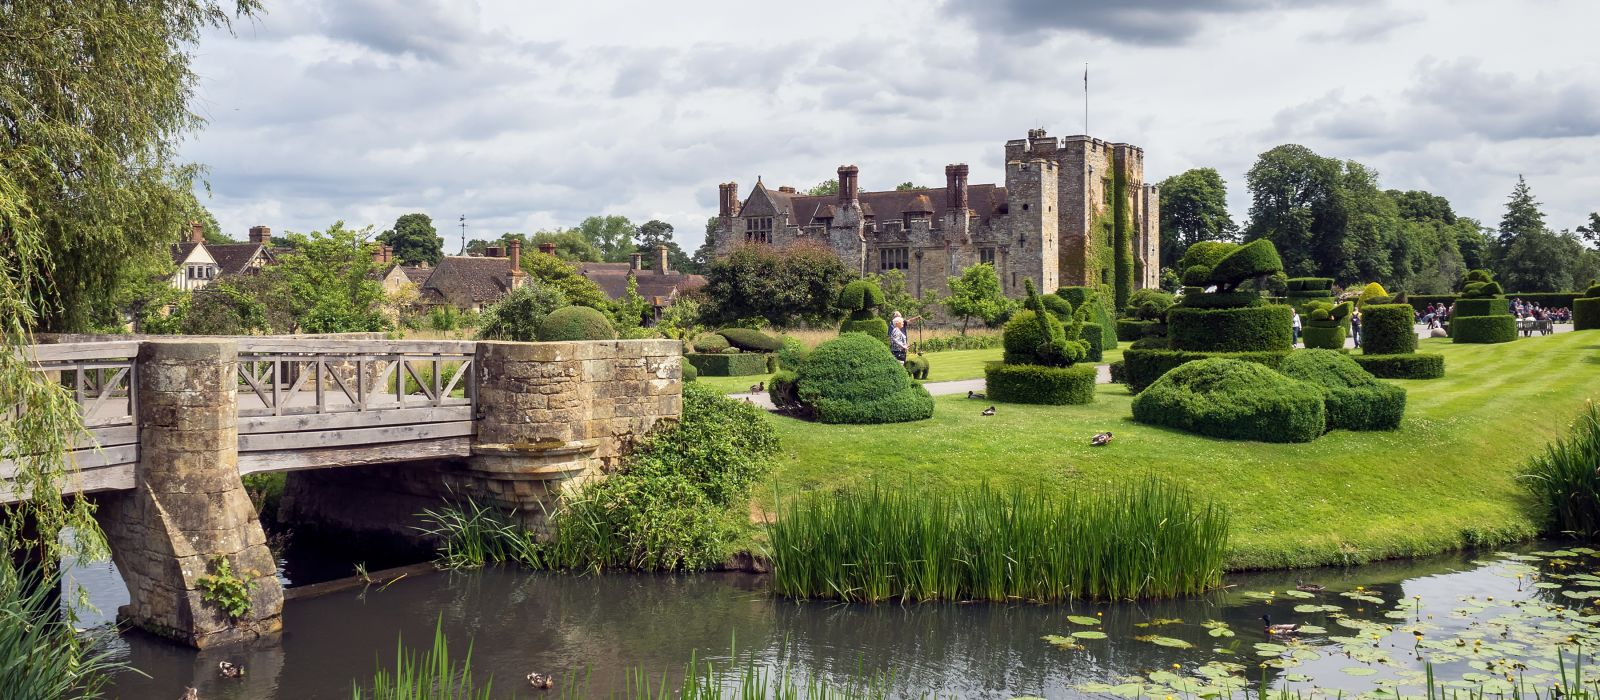 View of Hever Castle and Grounds in Hever Kent, UK, Europe